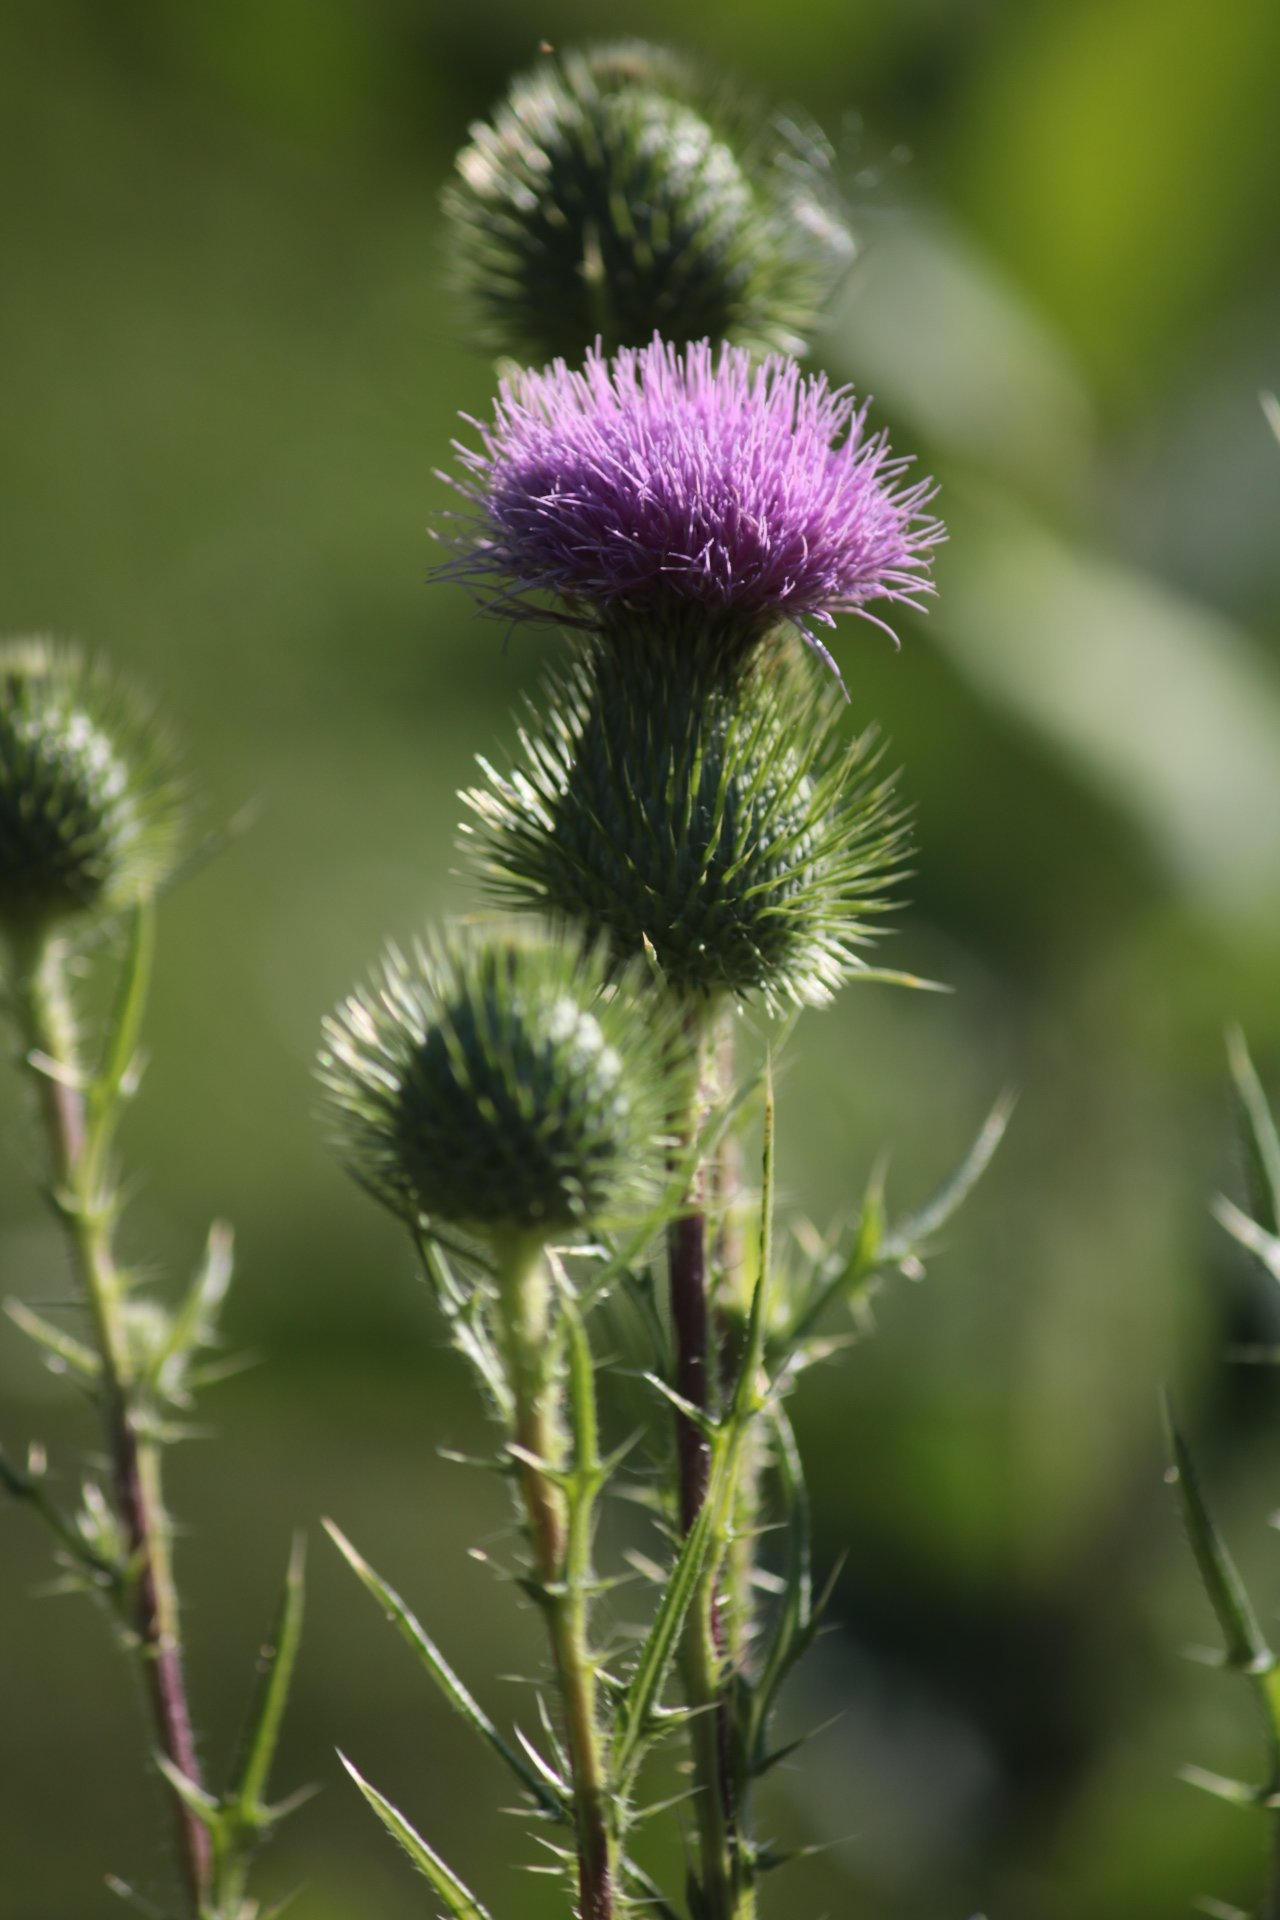 pink fuzzy top of a blooming thistle